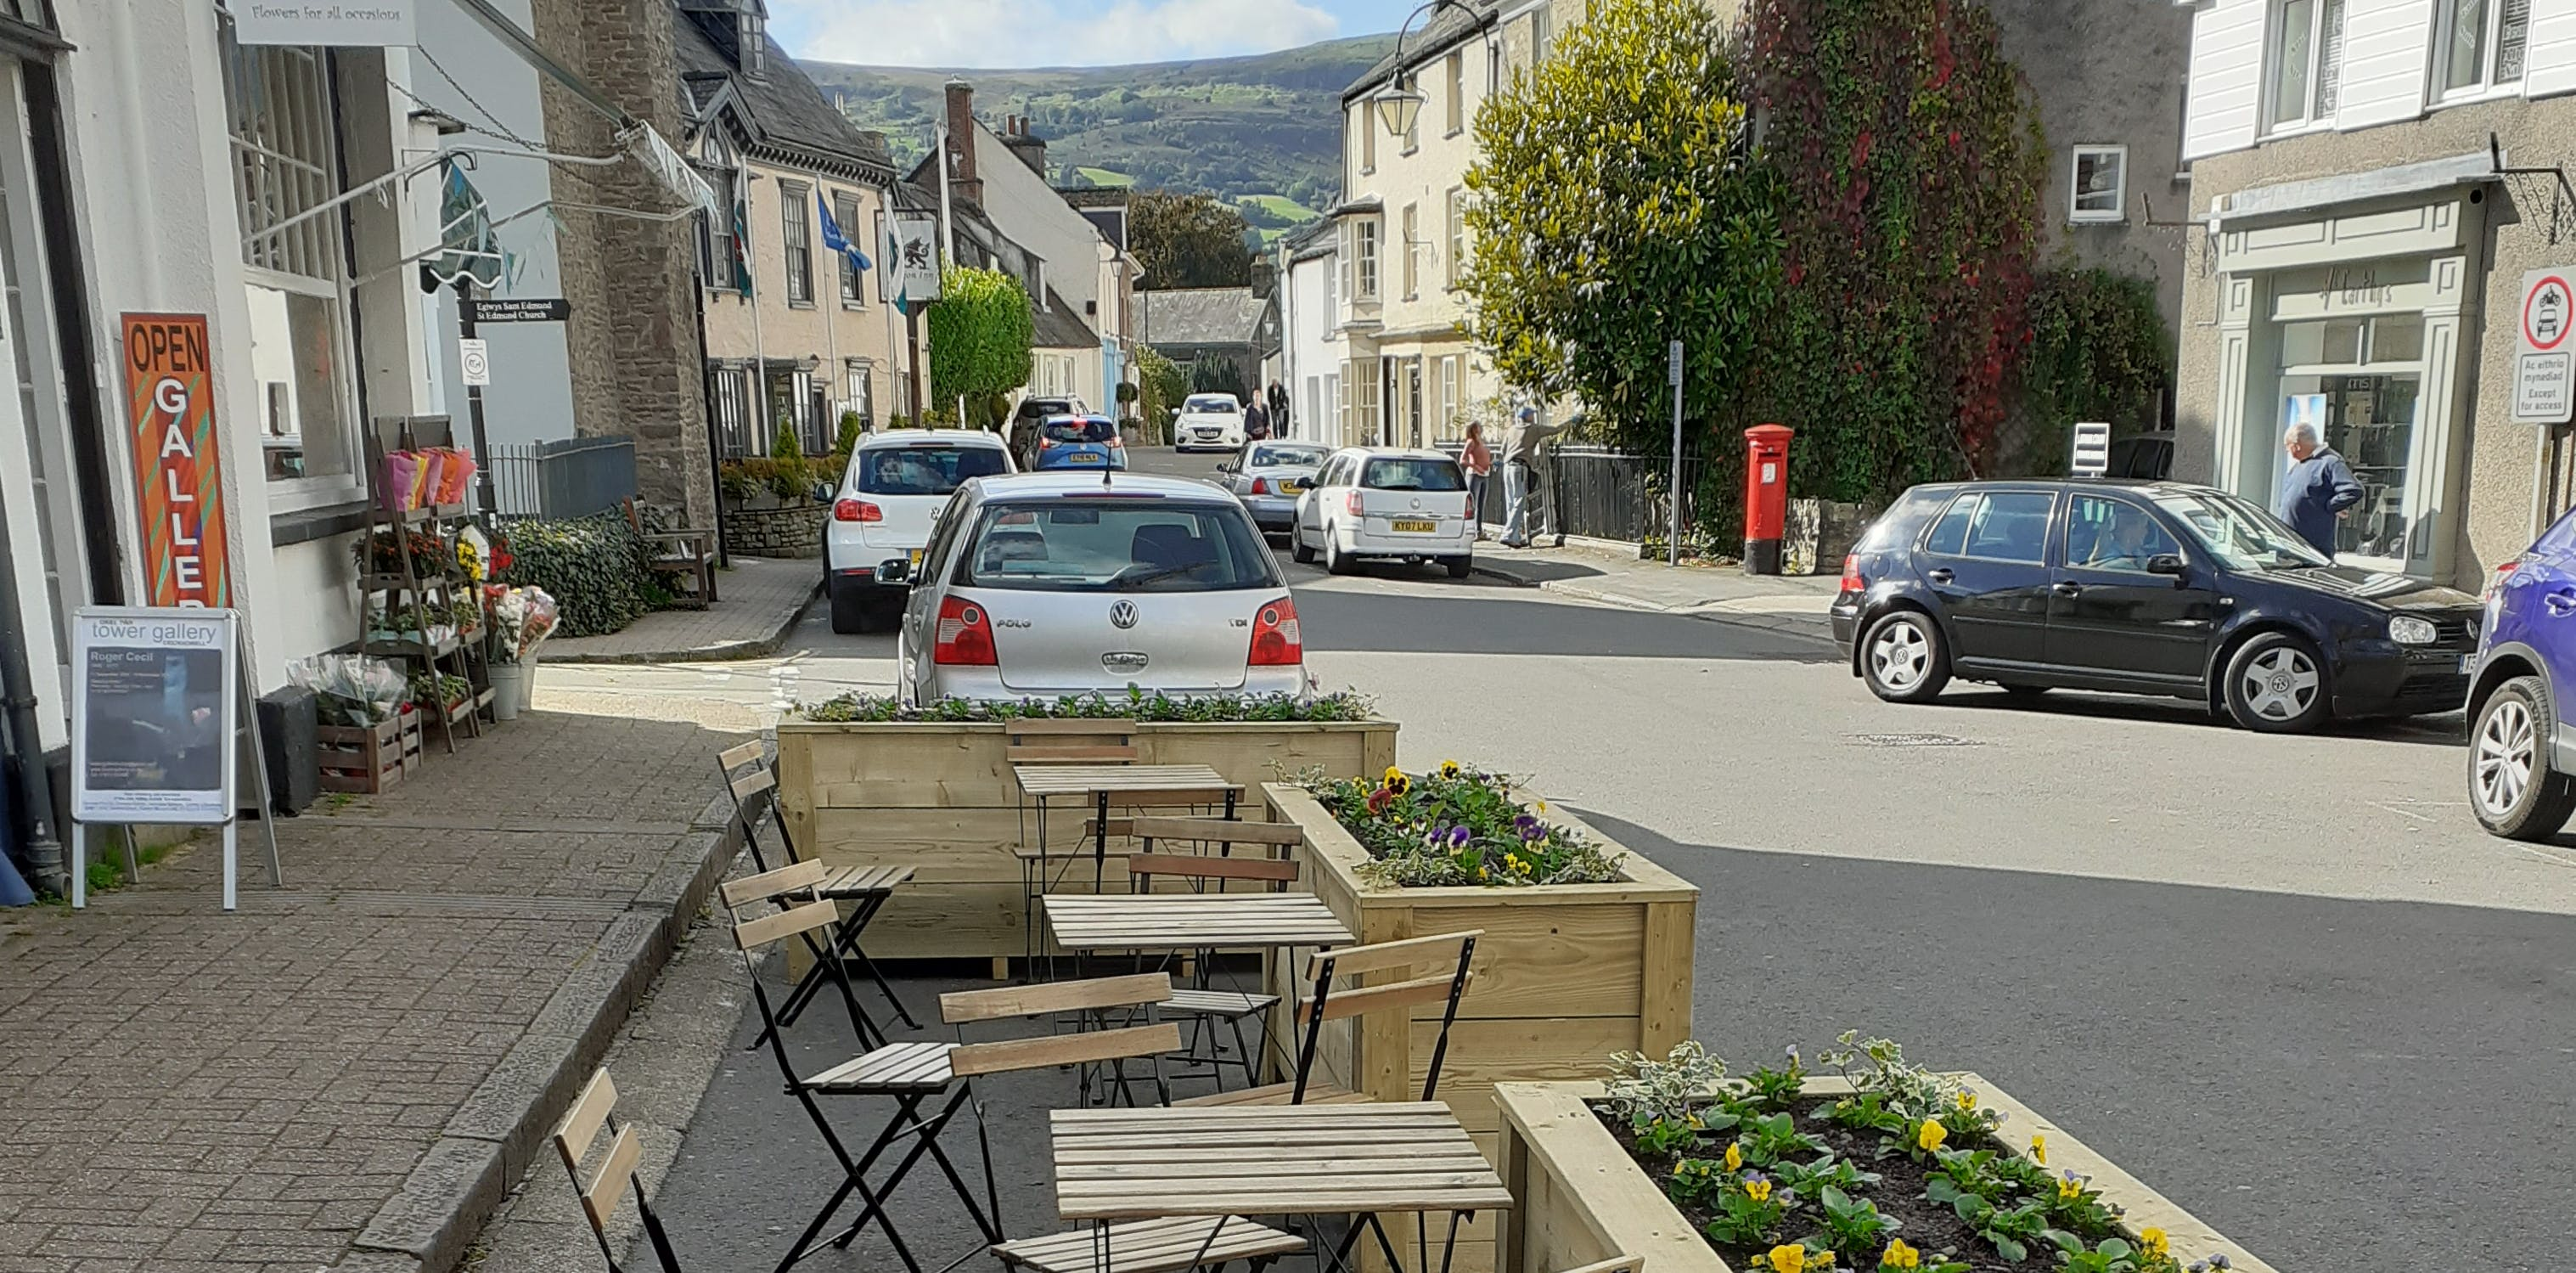 Image of table and chairs outside on the street surrounded by planters.